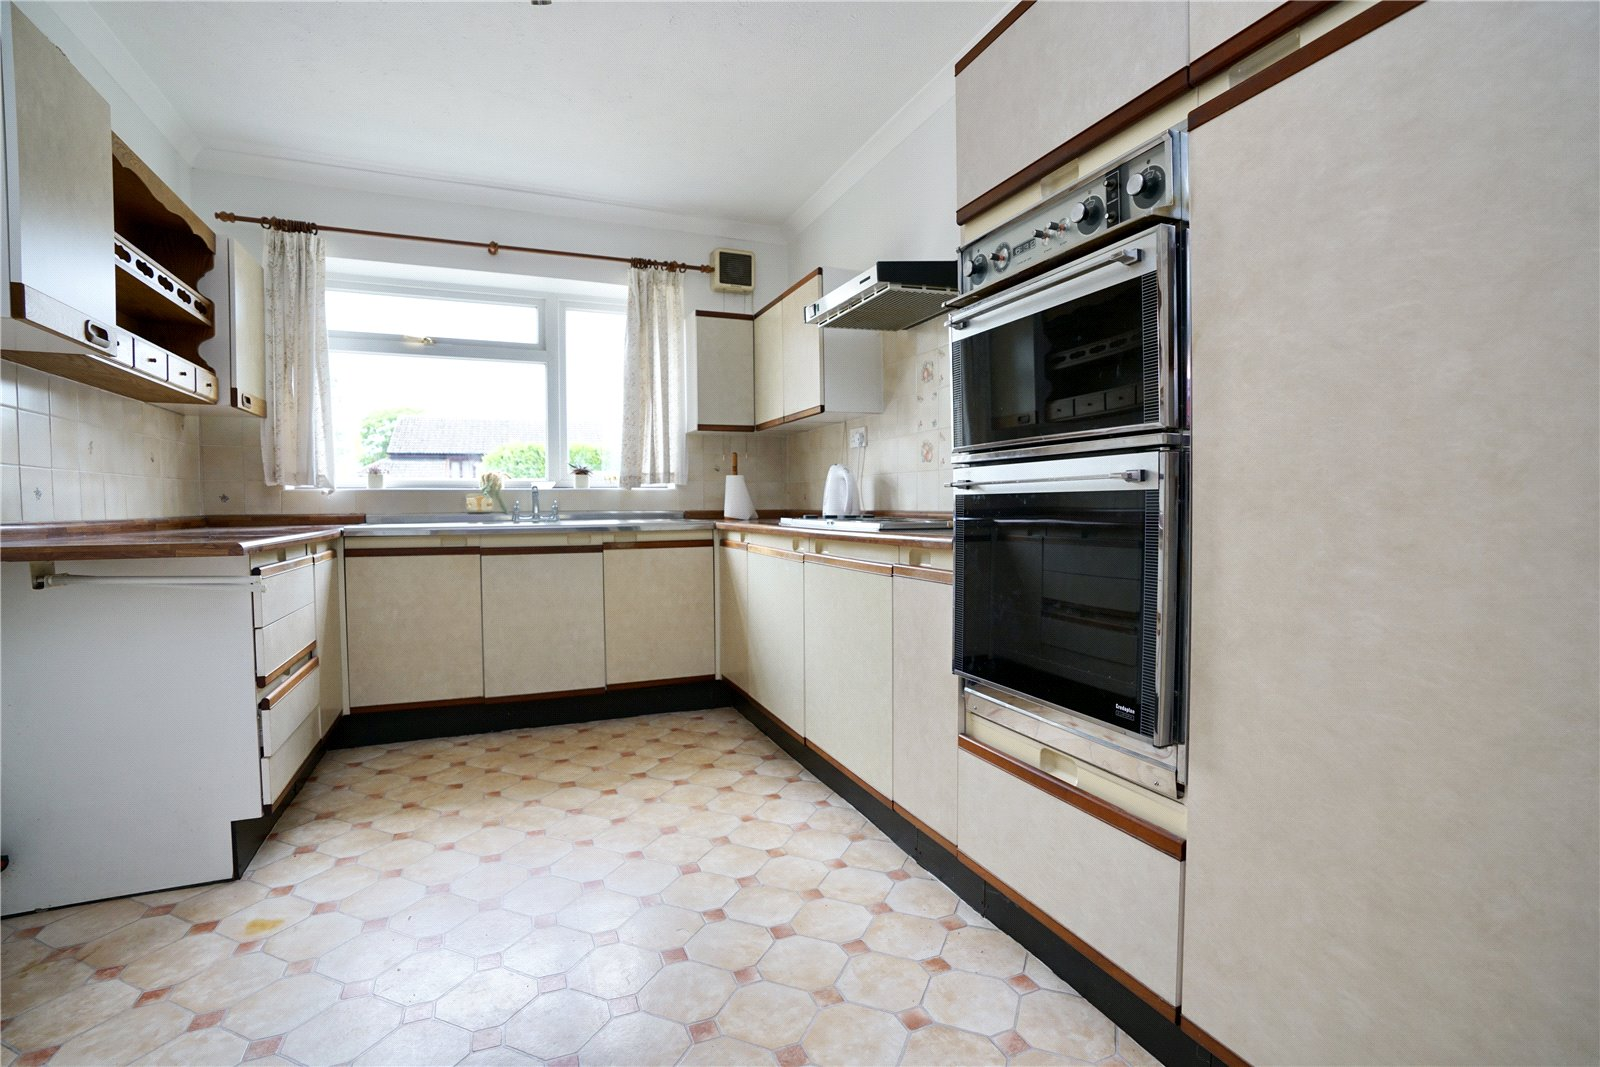 3 bed house for sale in Great North Road, Eaton Socon 4